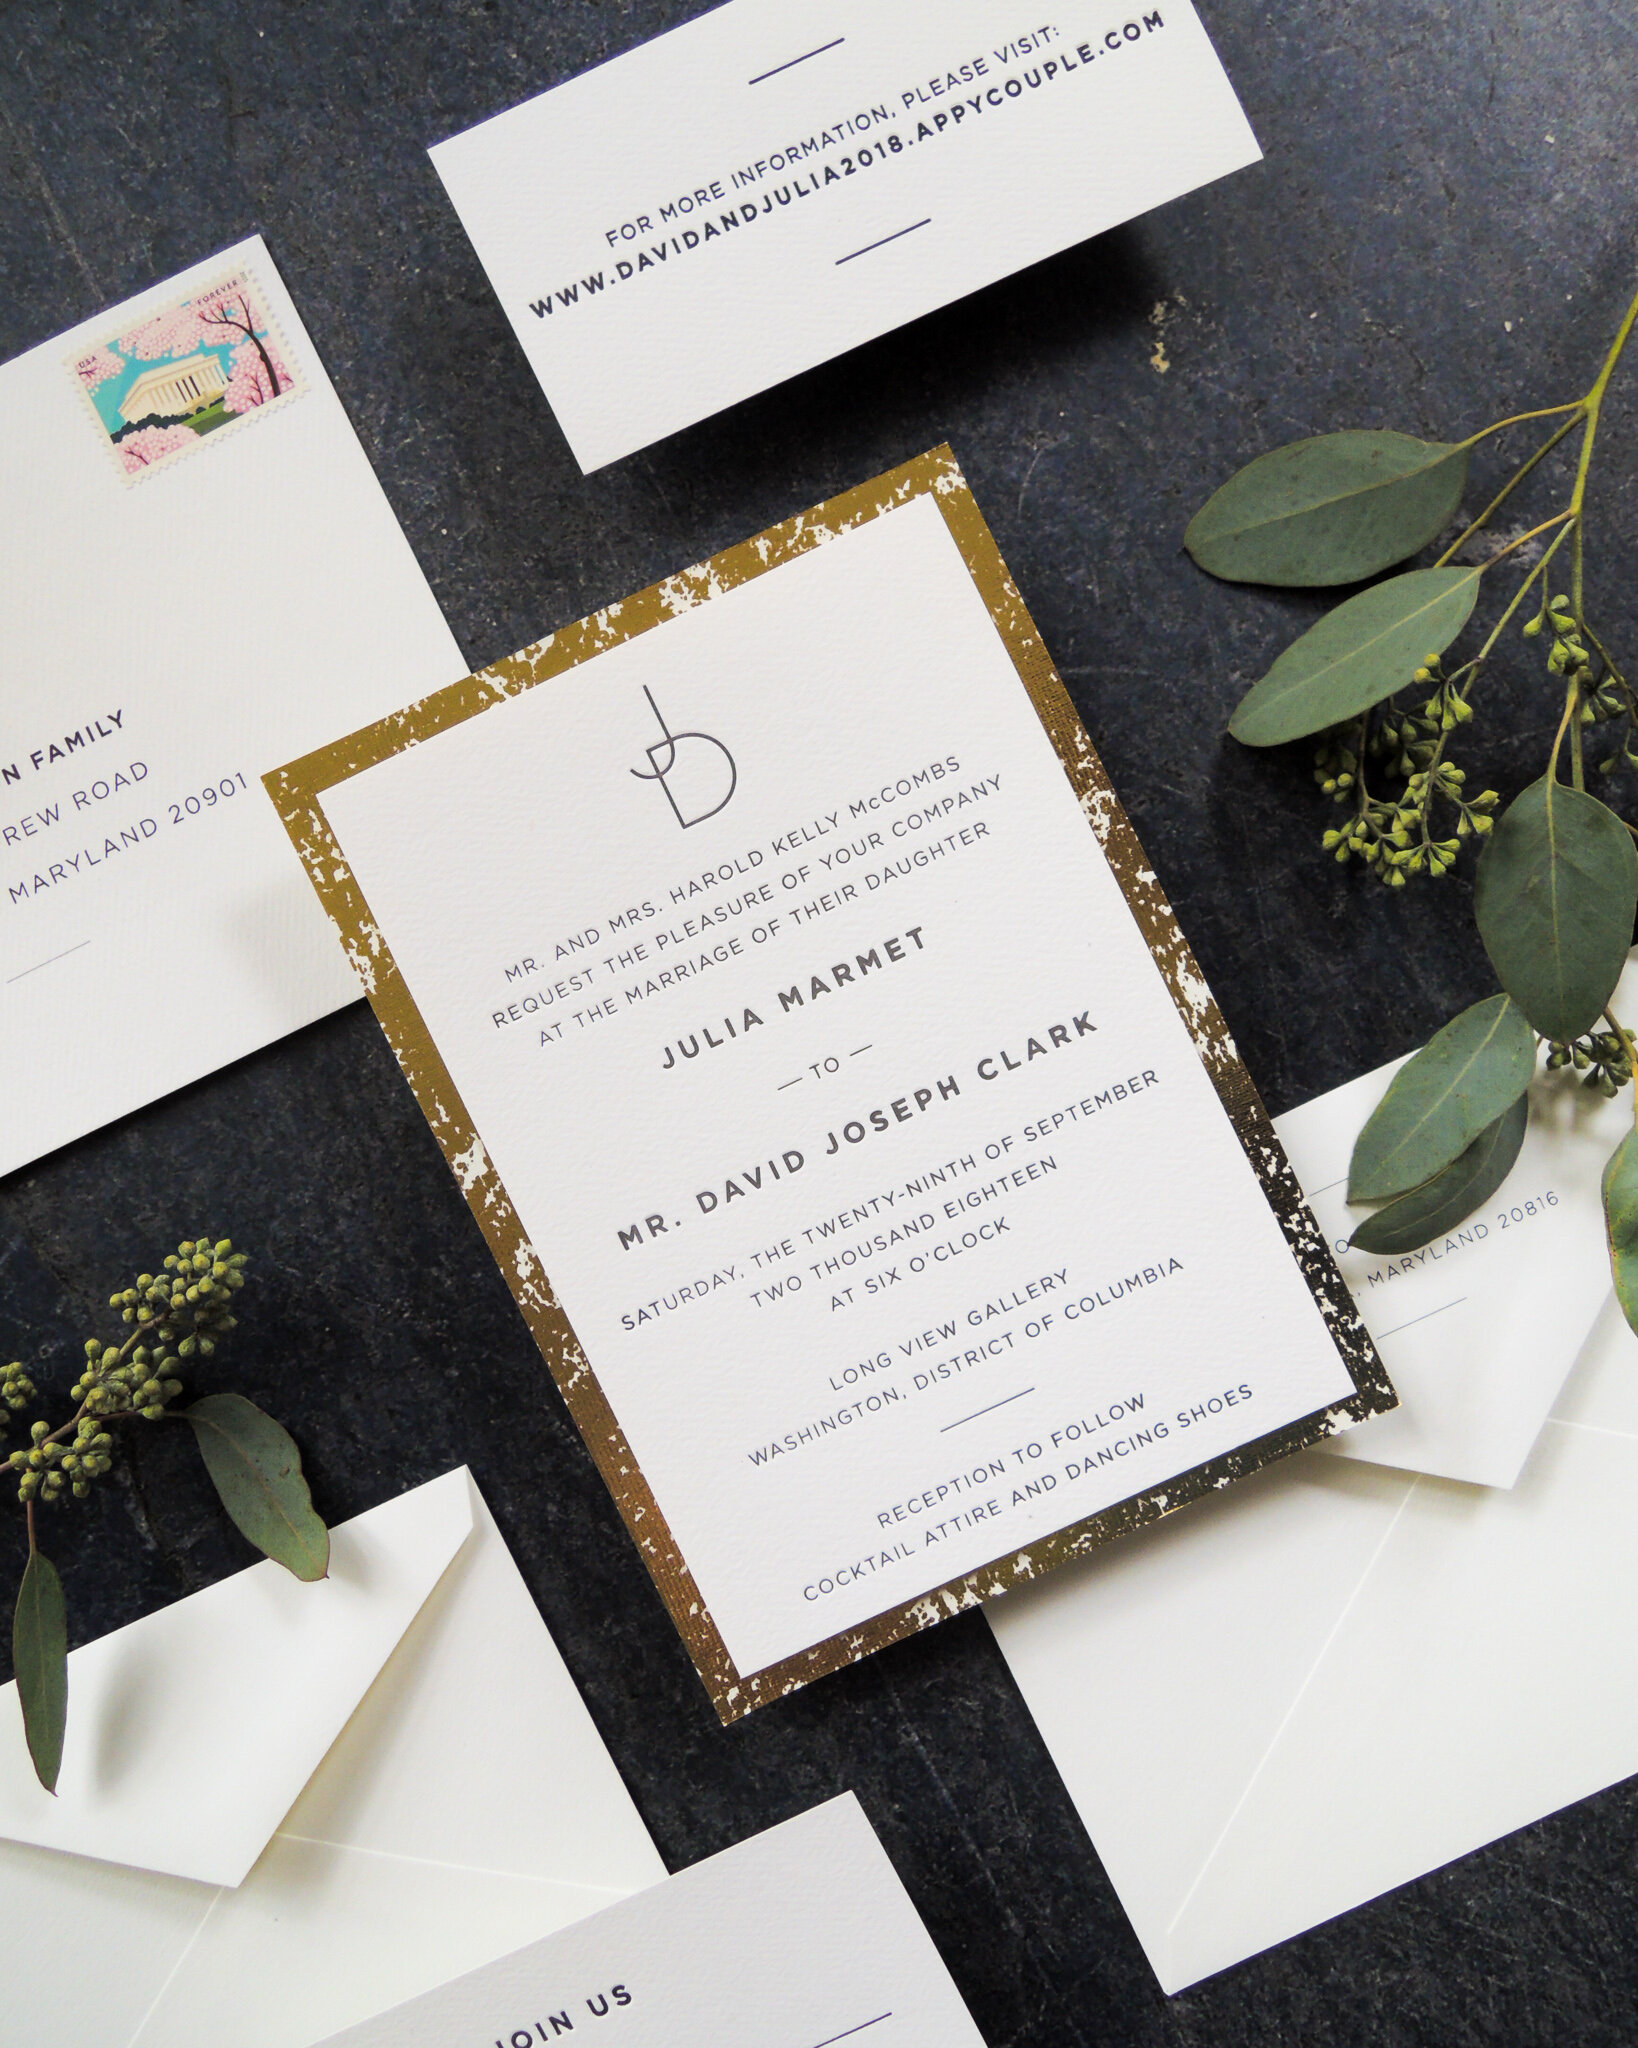 TypeA-Invitations_TheJulia_MinimalMonodernWeddingInvitationSuite_CustomMonogram_HandmadePaper_5.jpg